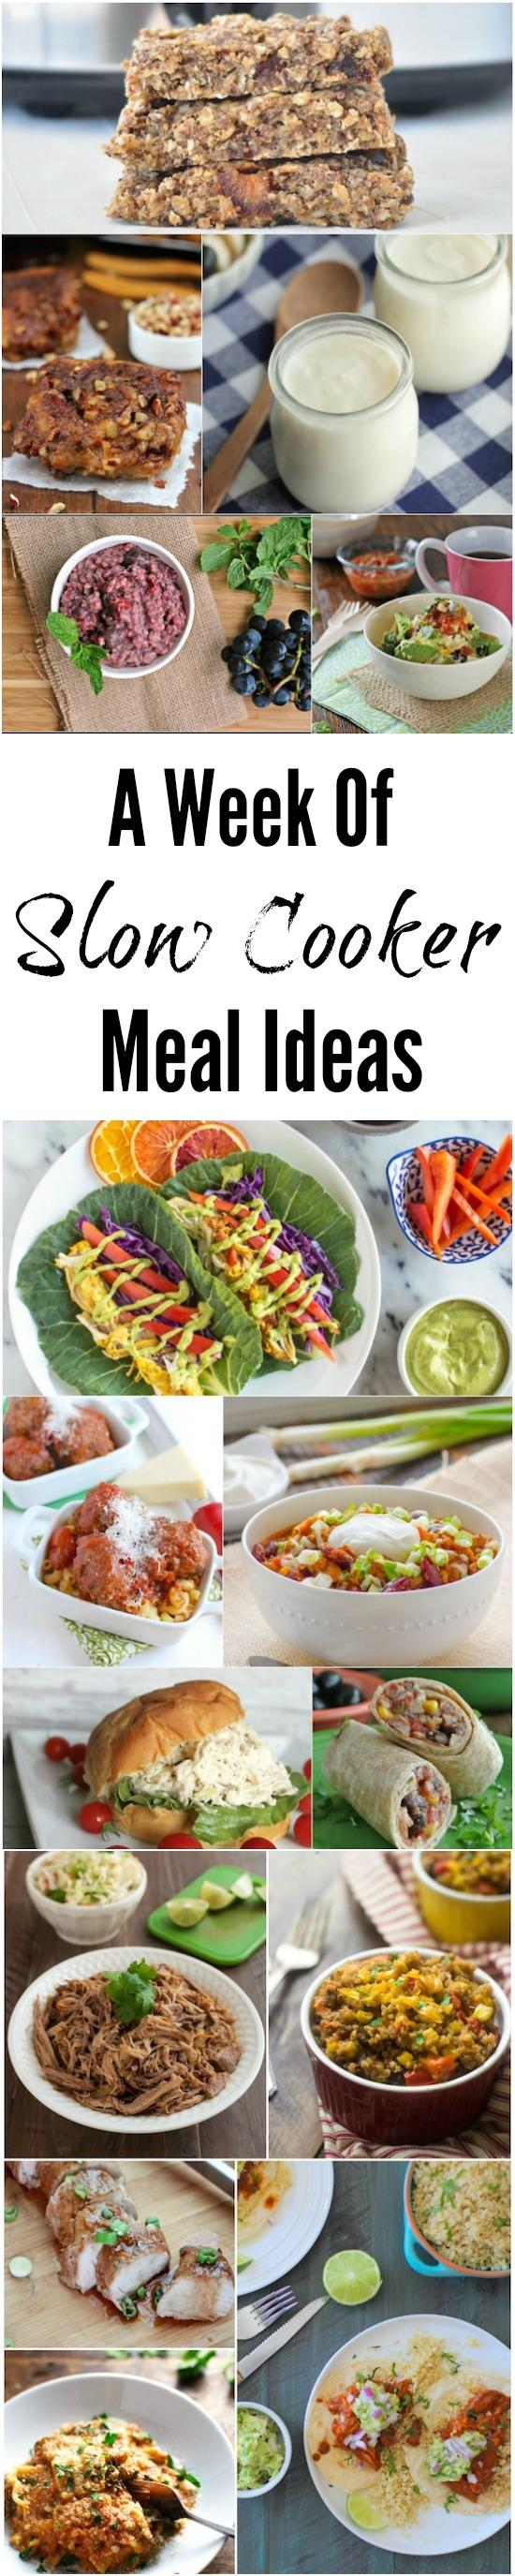 Need some new meal ideas? Here are 15 recipes (breakfast, lunch & dinner!) that can all be made in the crockpot!